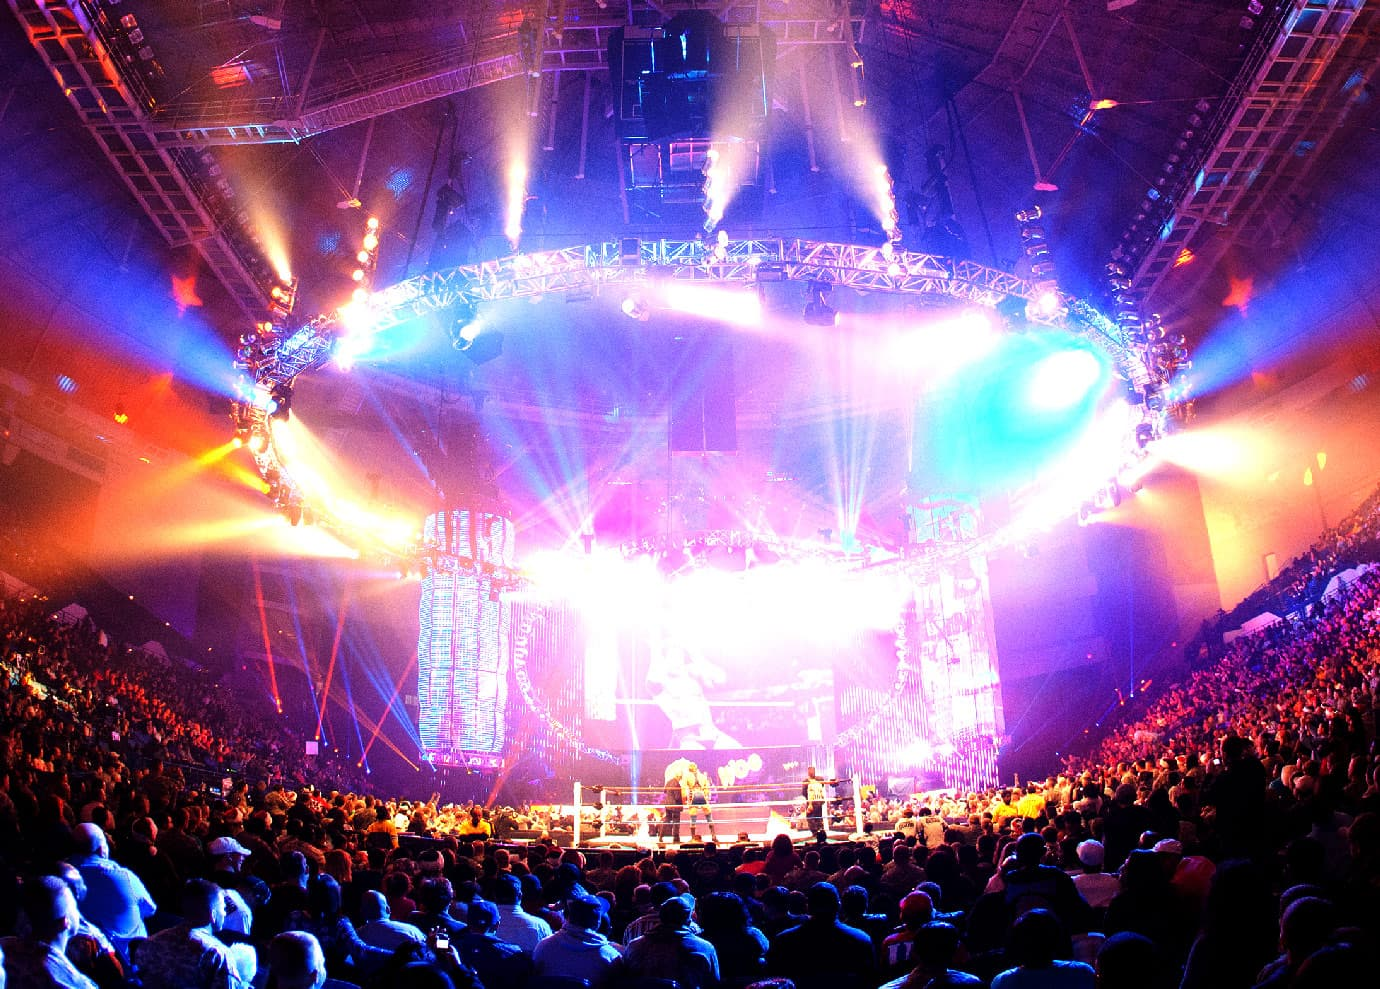 wwe tickets and live events information wwe